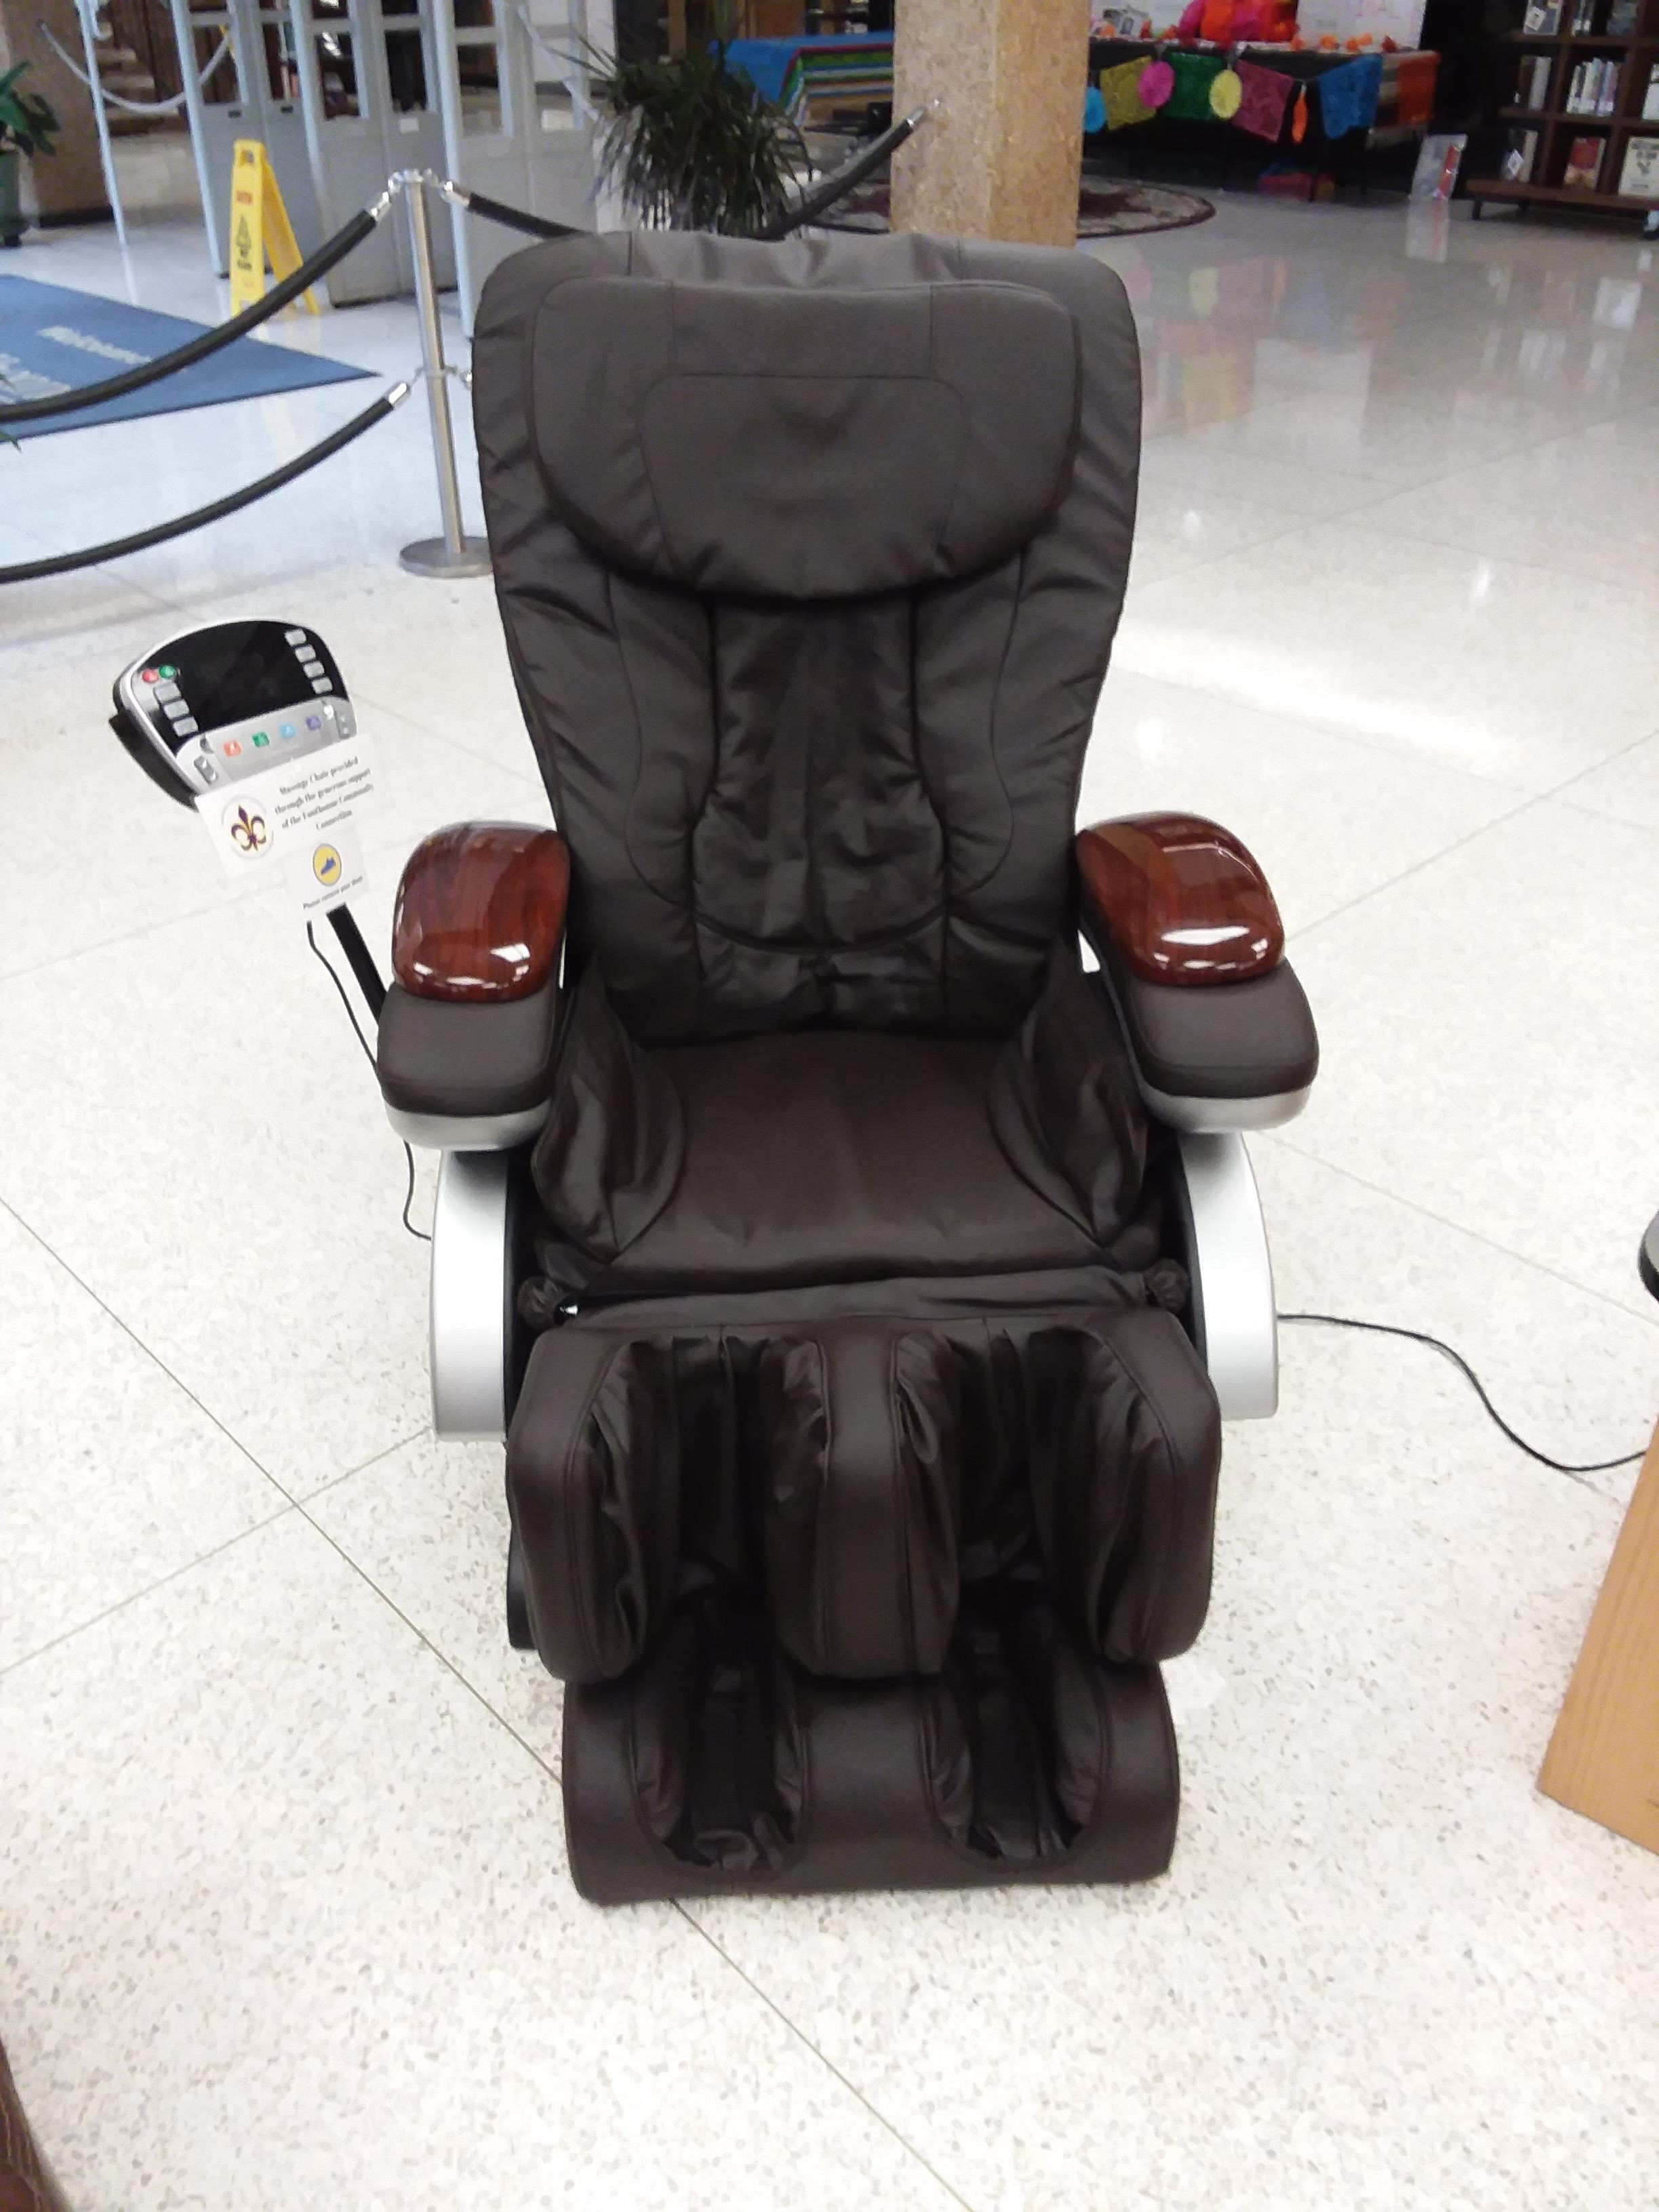 5) One additional massage chair